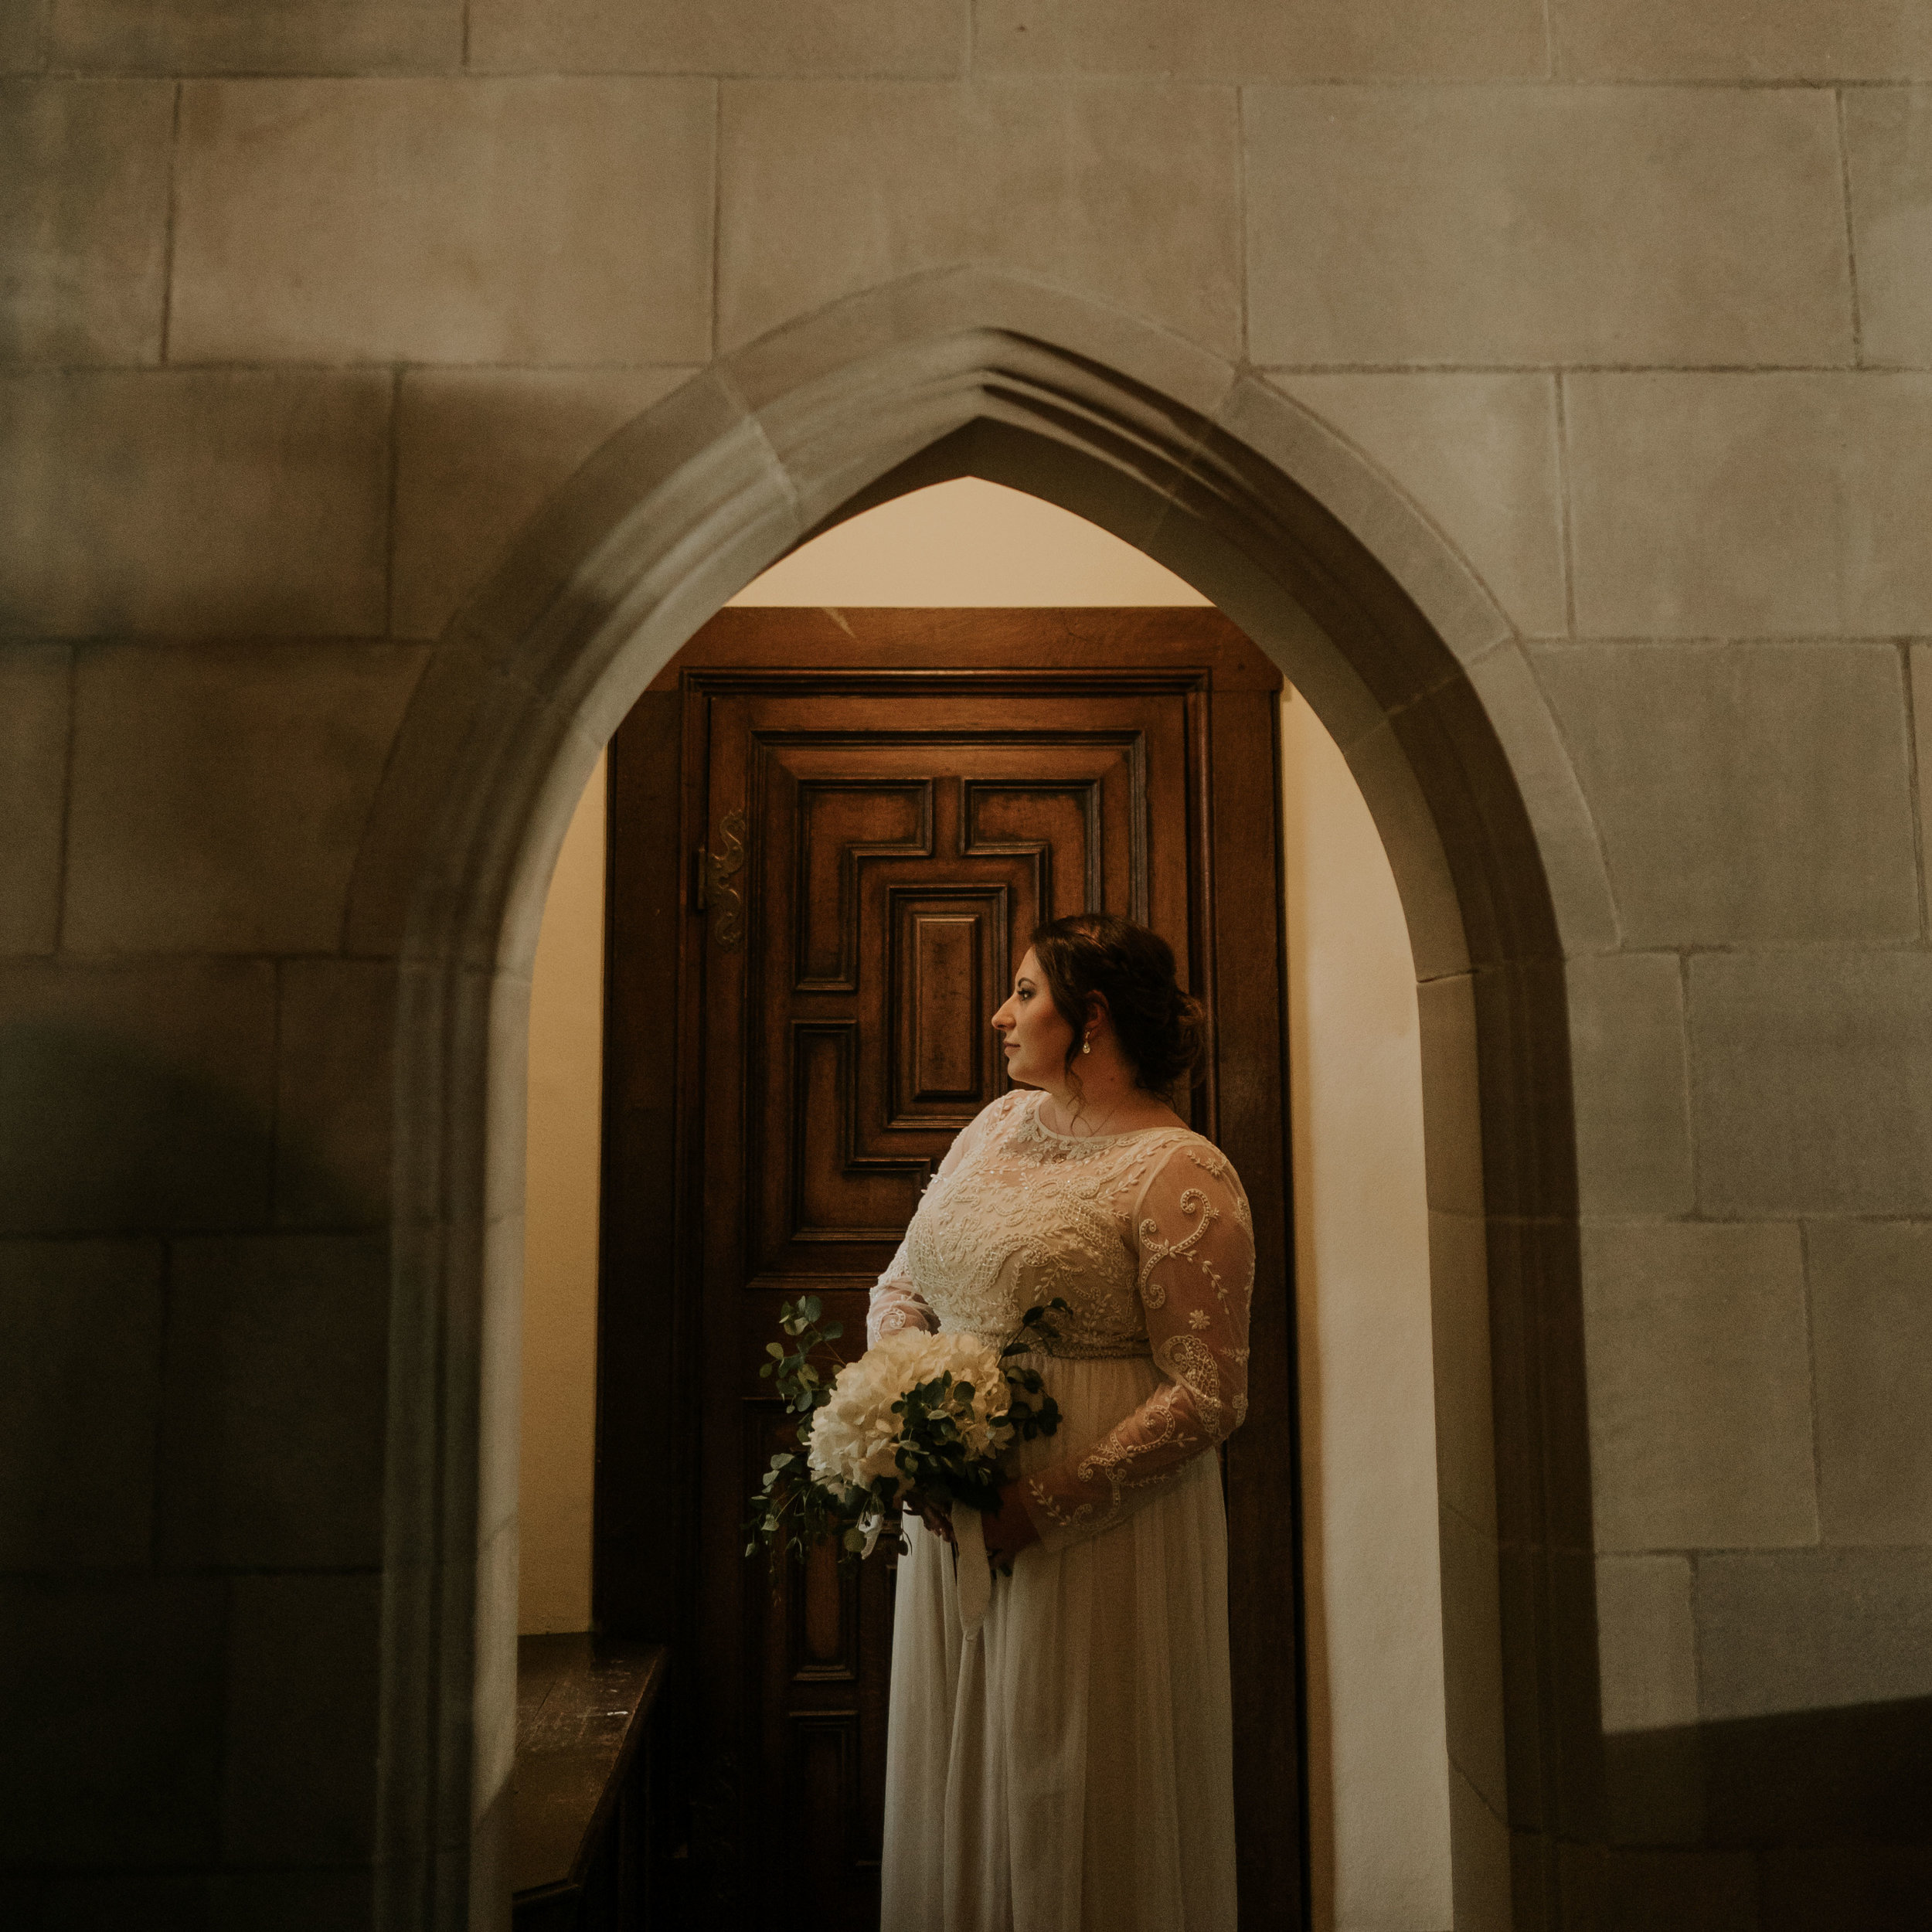 bride-standing-under-arch-looking-out-window-elopement-salisbury-house-desmoines-iowa-raelyn-ramey-photography.jpg